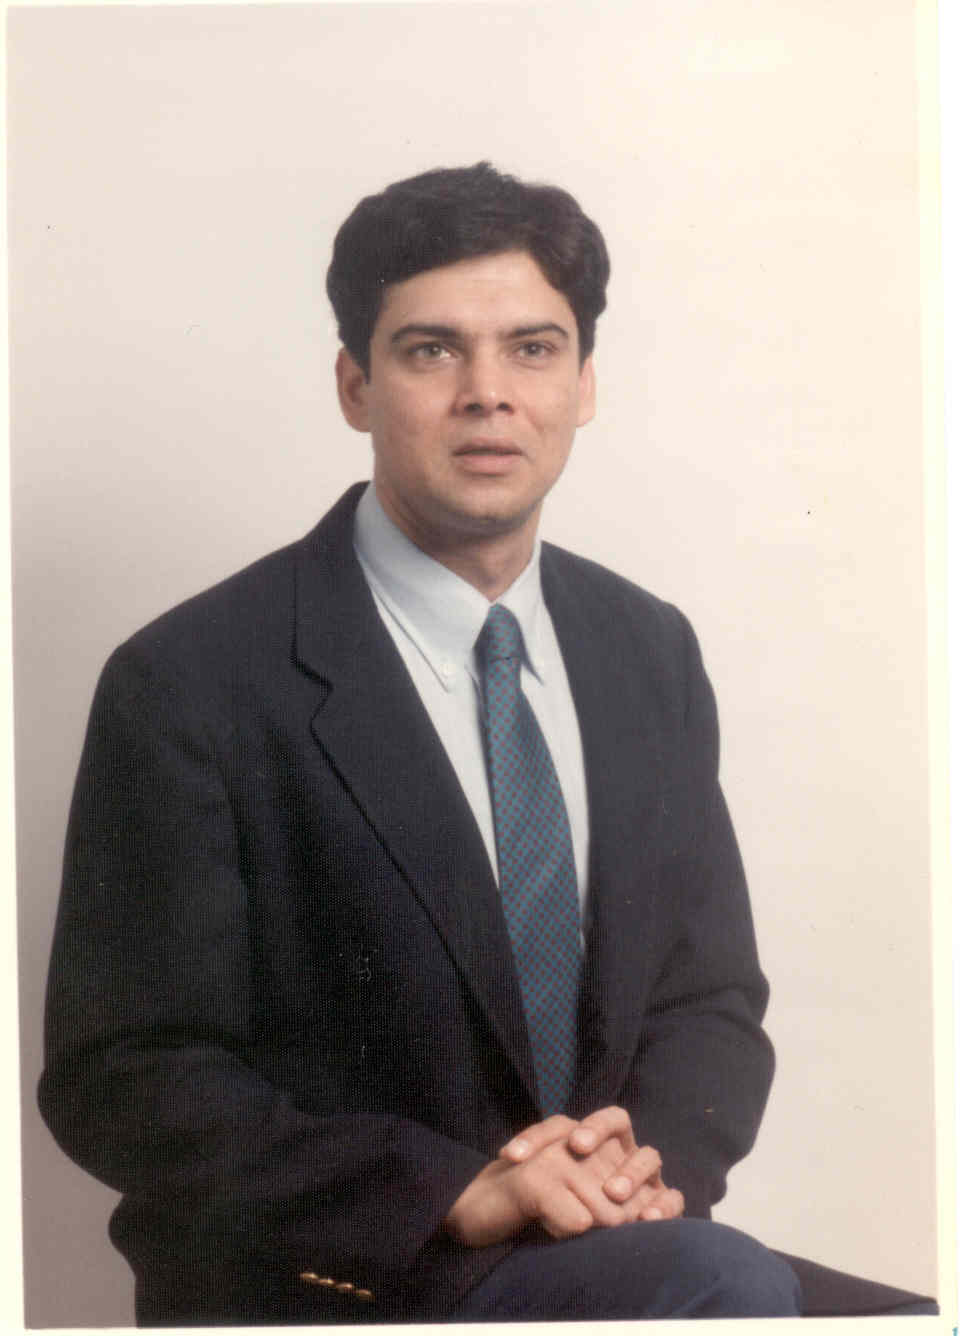 Myself at 35 years of age - Friendly, polite & honest Mr Anup in Springfield, Illinois - Then (1992)